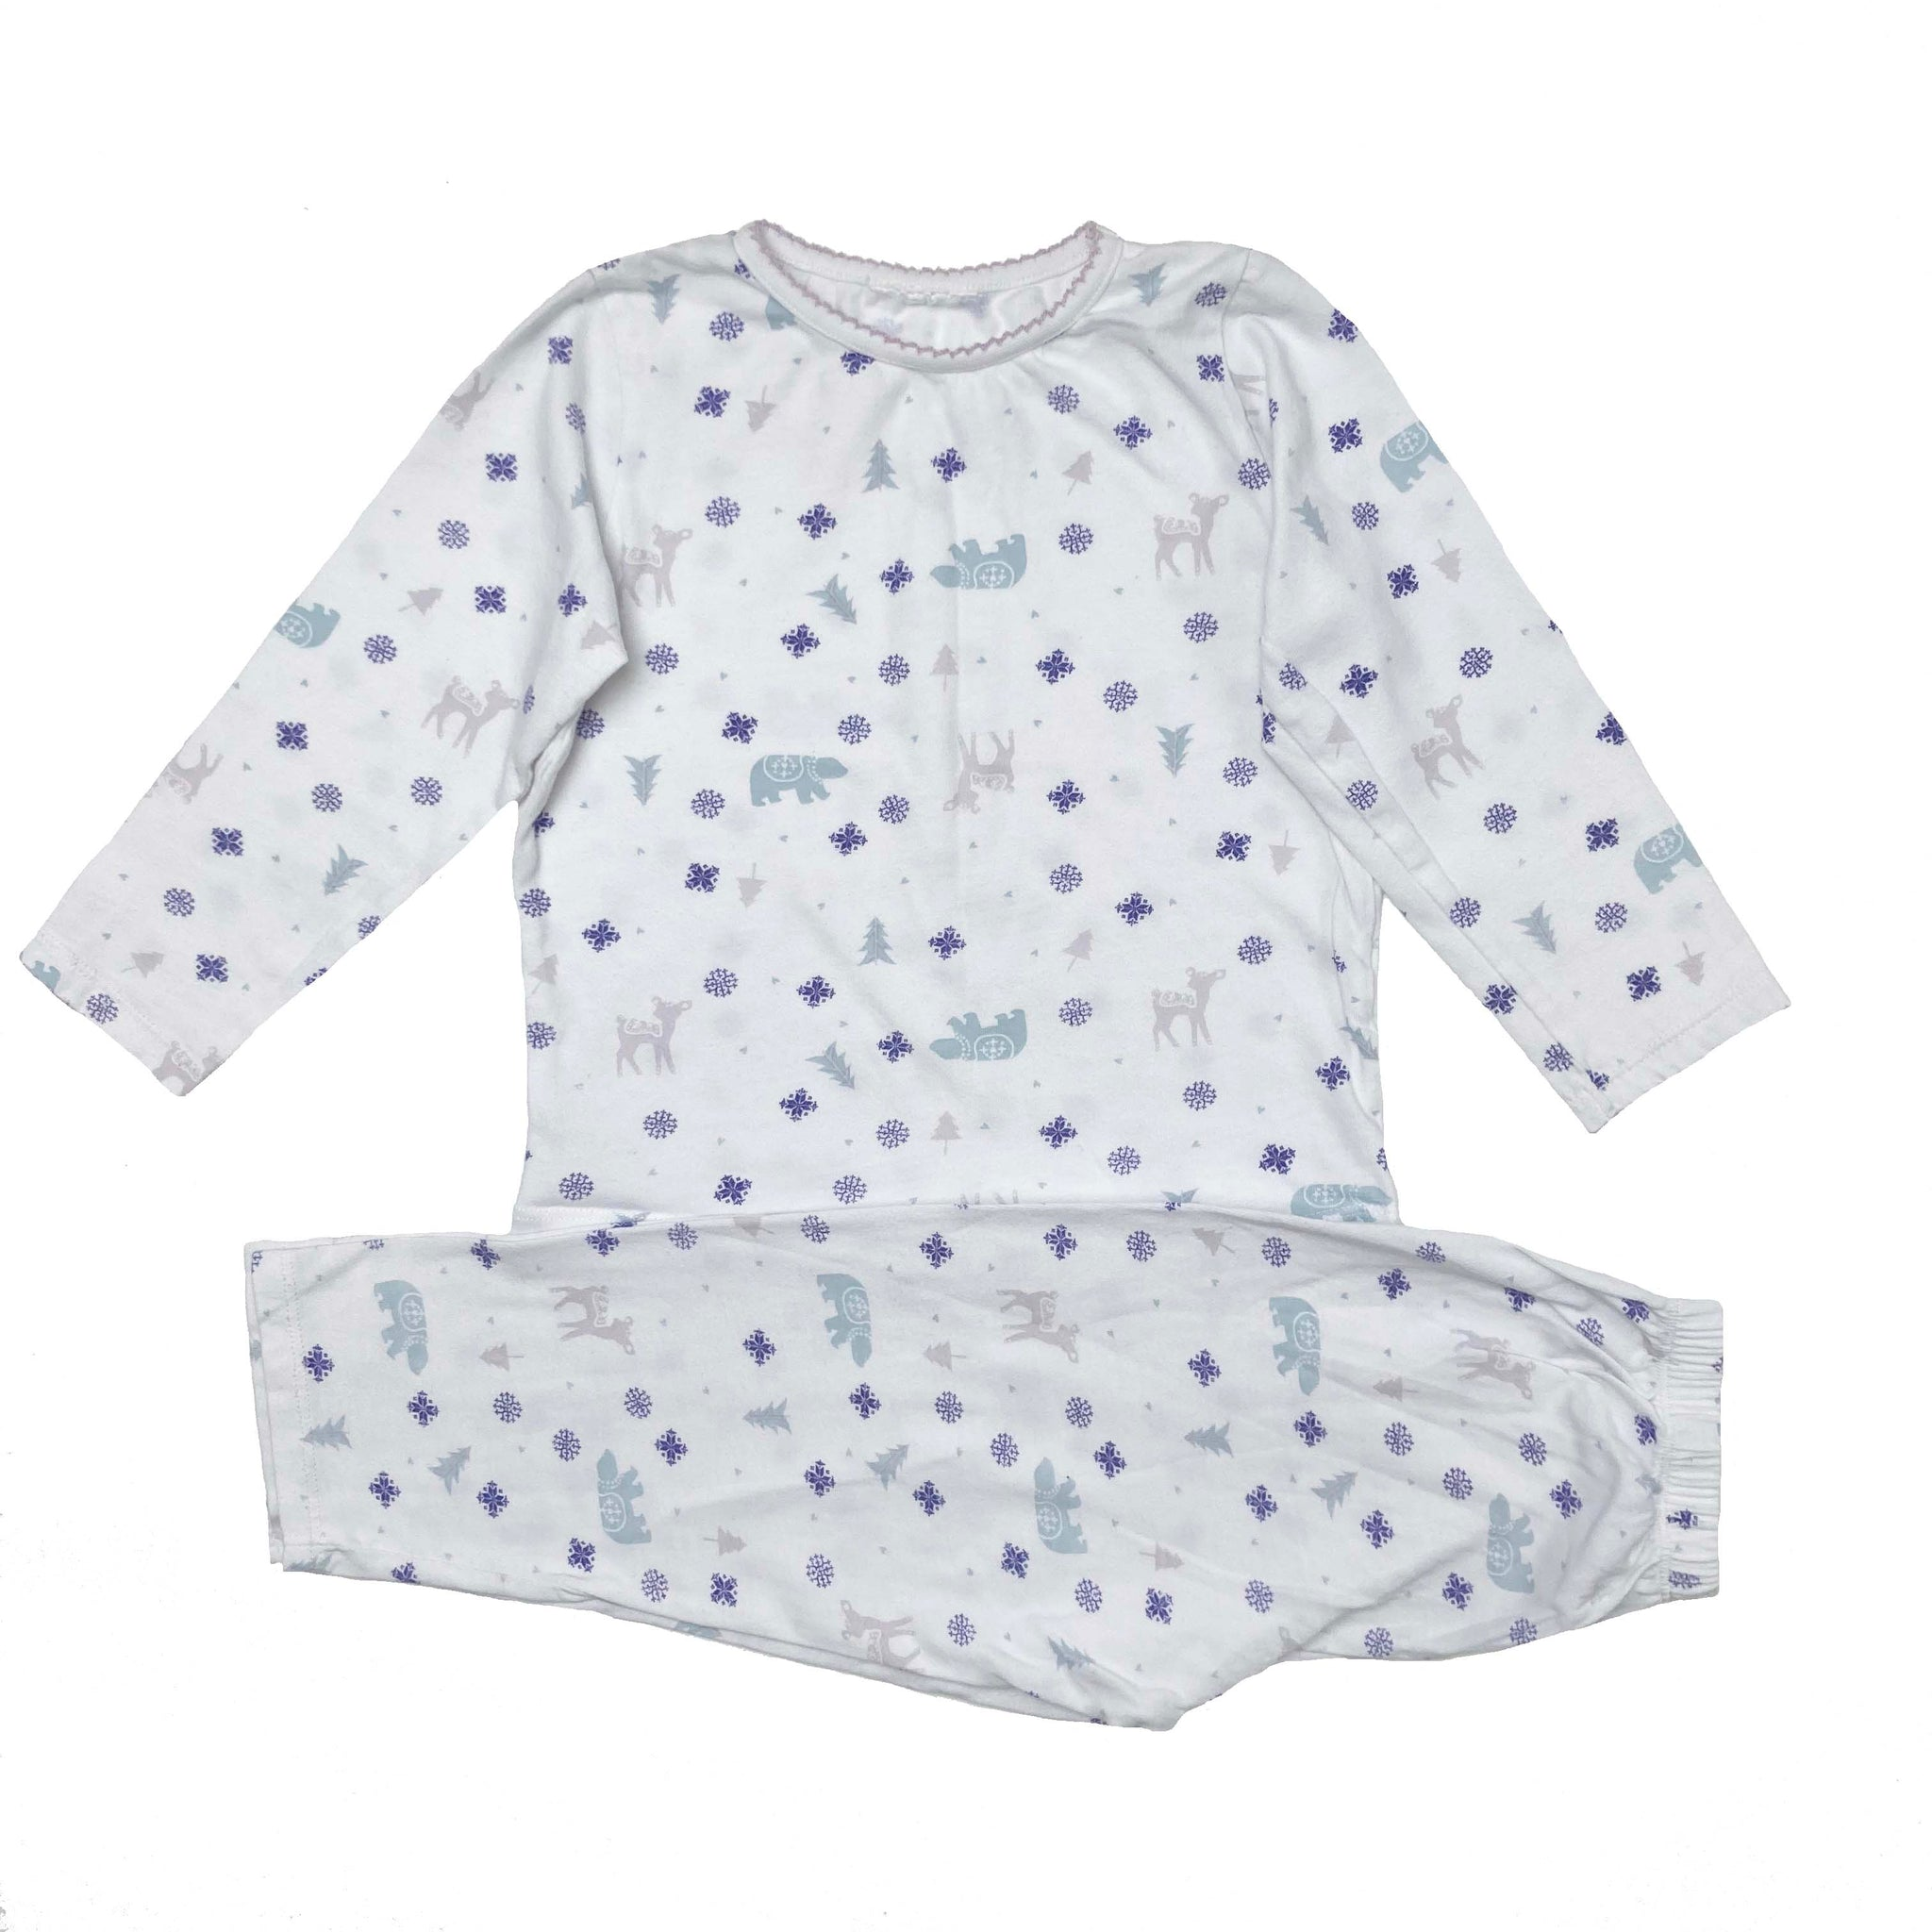 THE LITTLE WHITE COMPANY PYJAMAS 2-3 YEARS